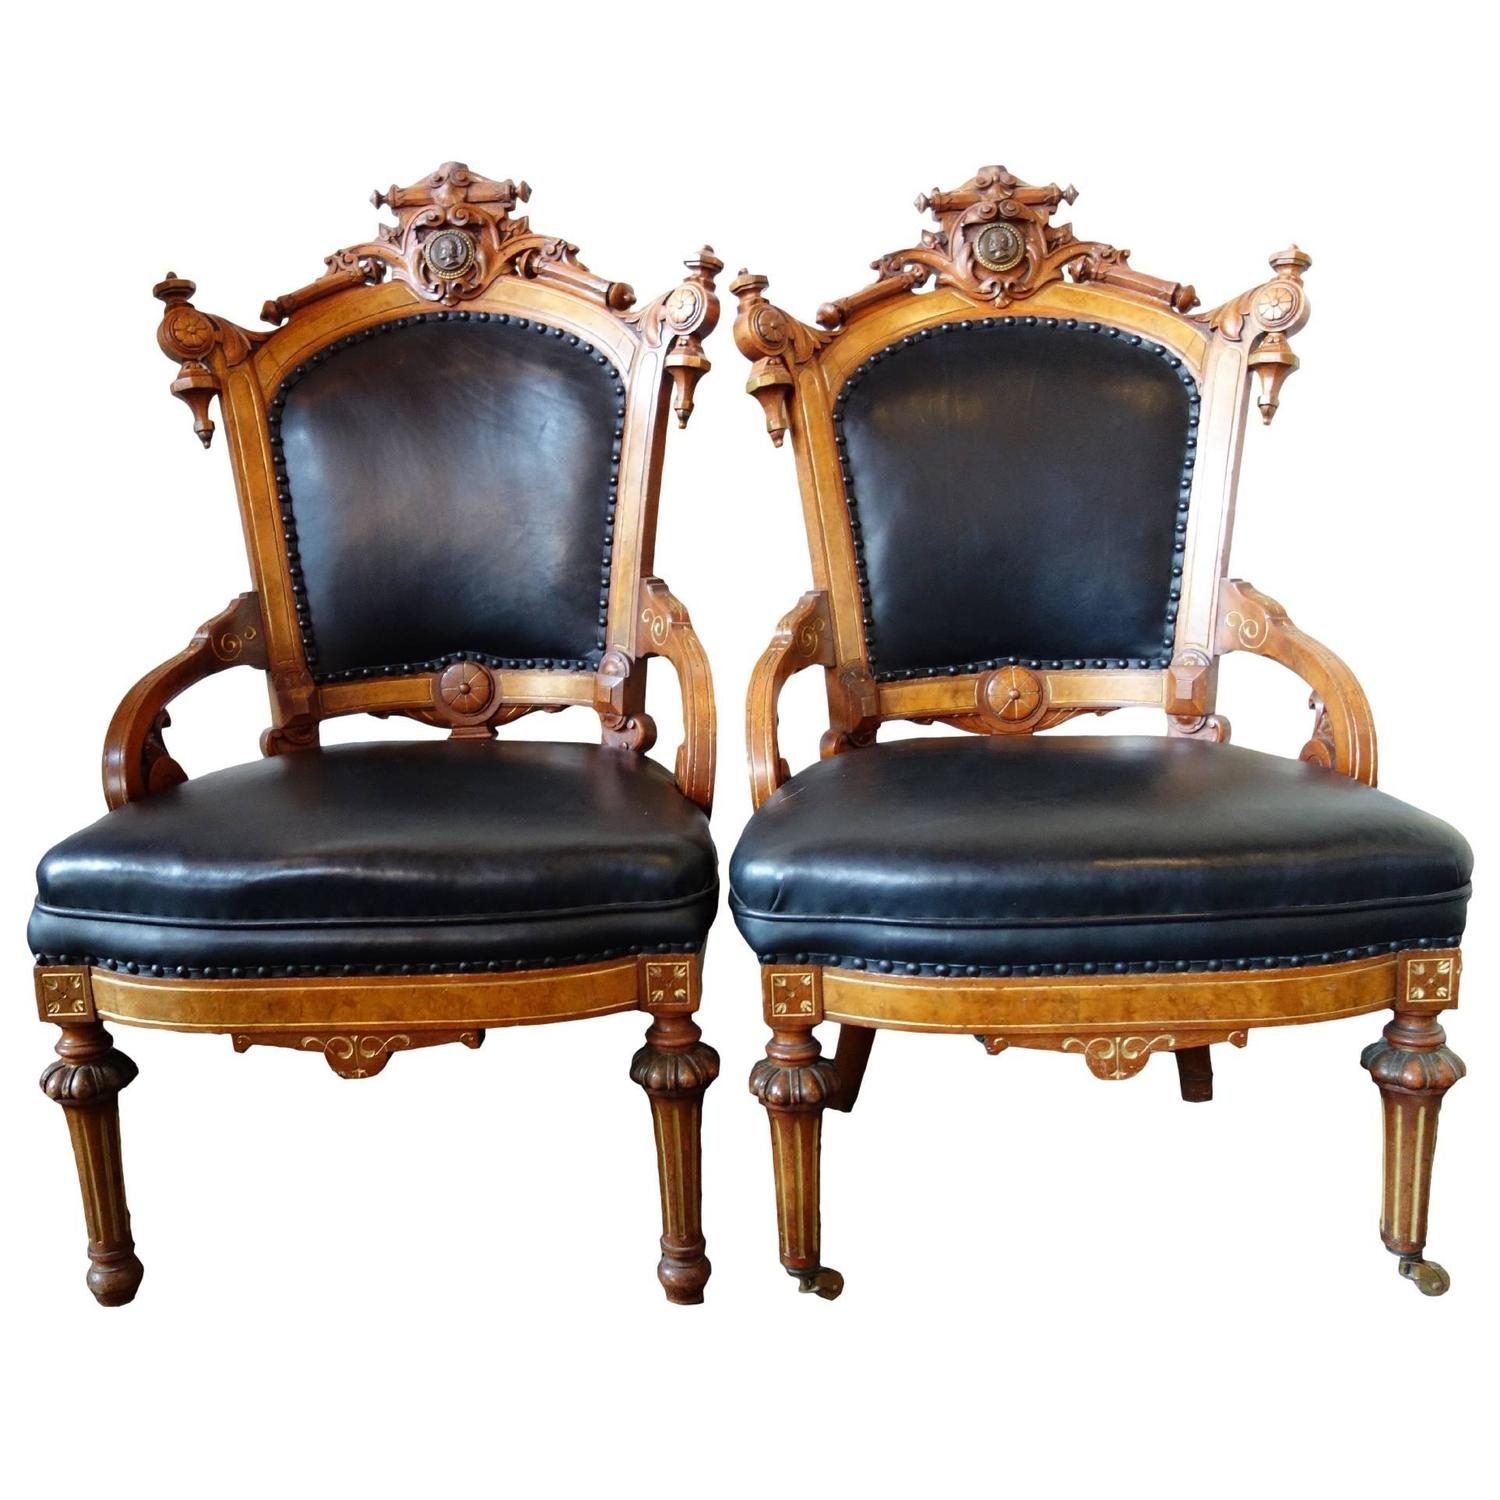 Pair Of Rococo Revival John Jelliff Parlor Chairs For Sale At 1stdibs